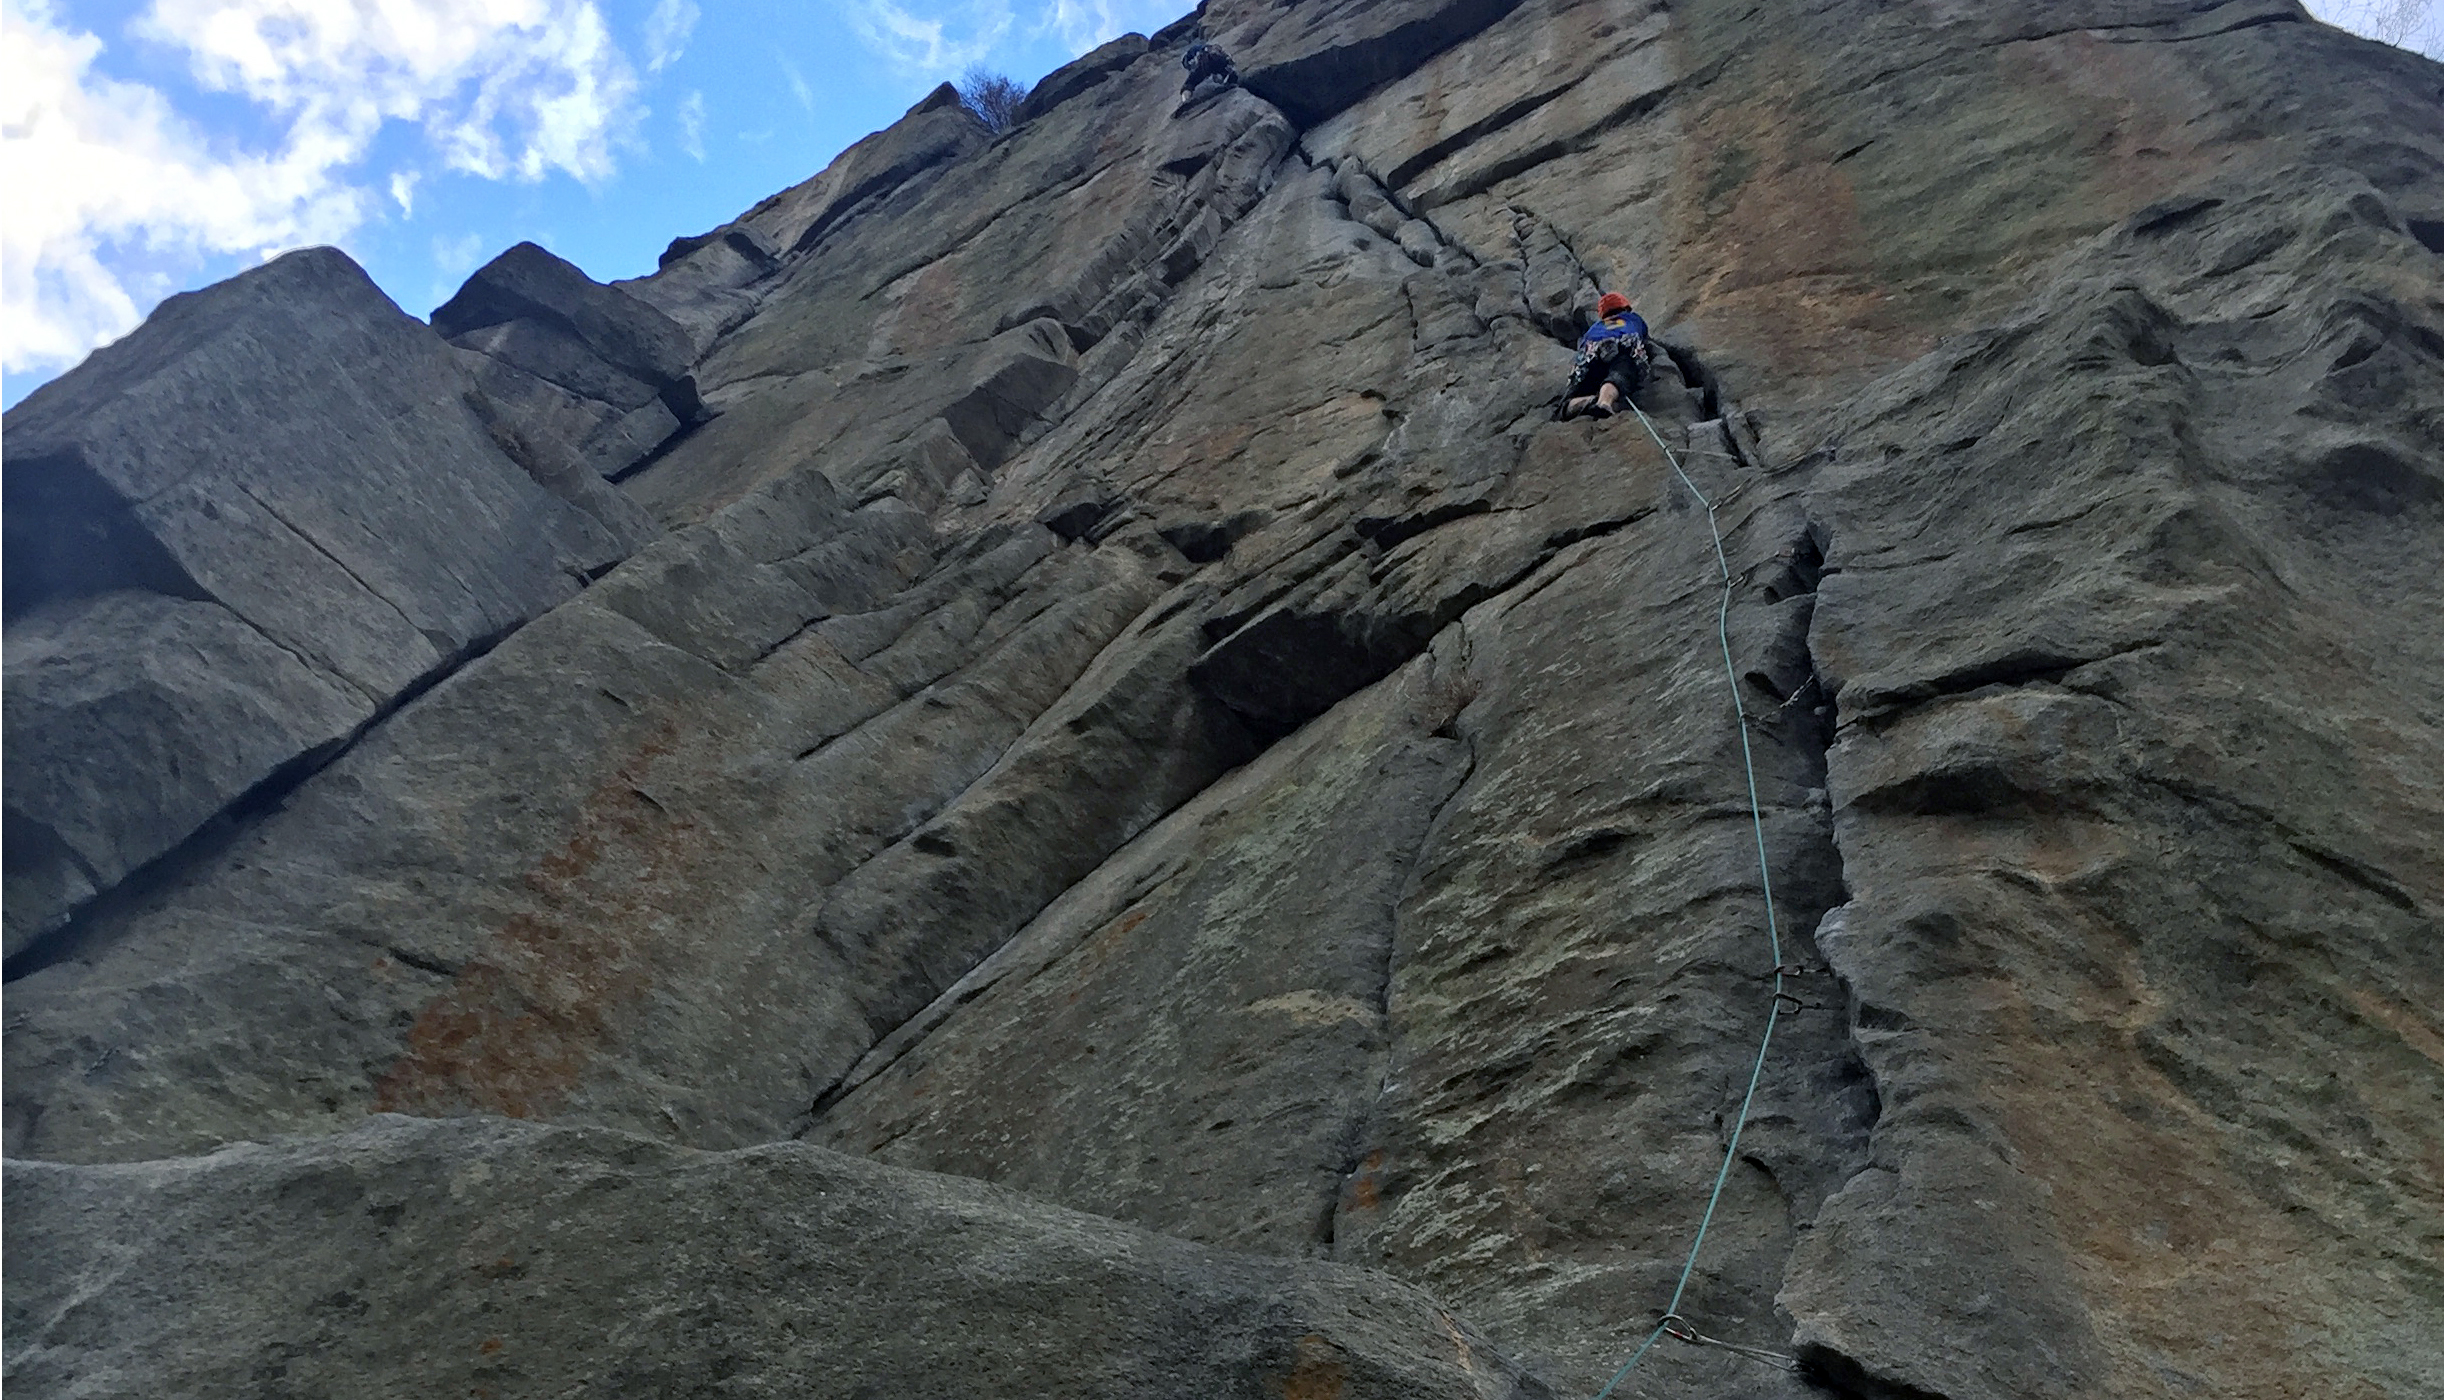 Peter Holben leads Country Club Crack (5.11b/c) at Castle Rock in Boulder Canyon, Colorado, in one 150-foot pitch. [Photo] Chris Van Leuven